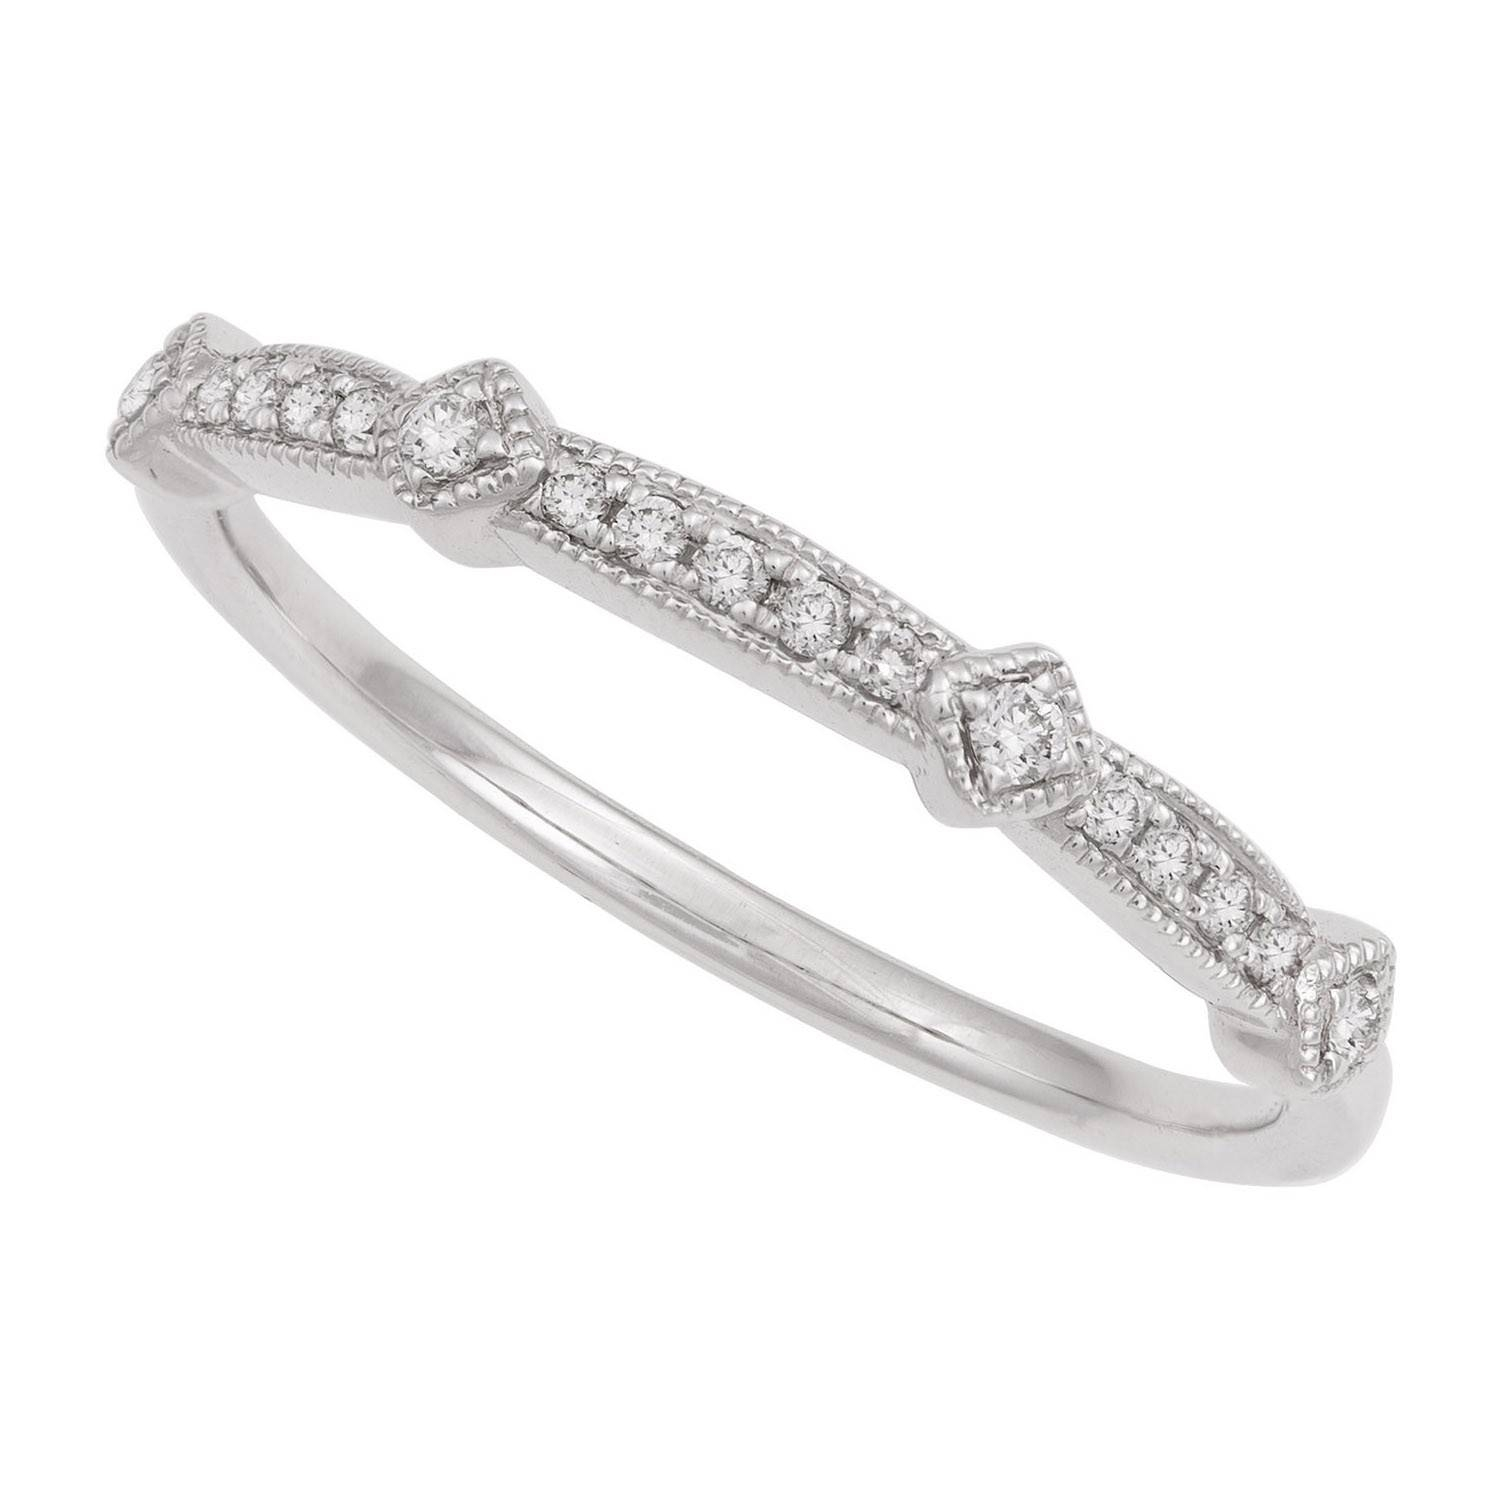 18ct White Gold Vintage Style Wedding Ring Pertaining To Old Fashioned Style Wedding Rings (View 11 of 15)